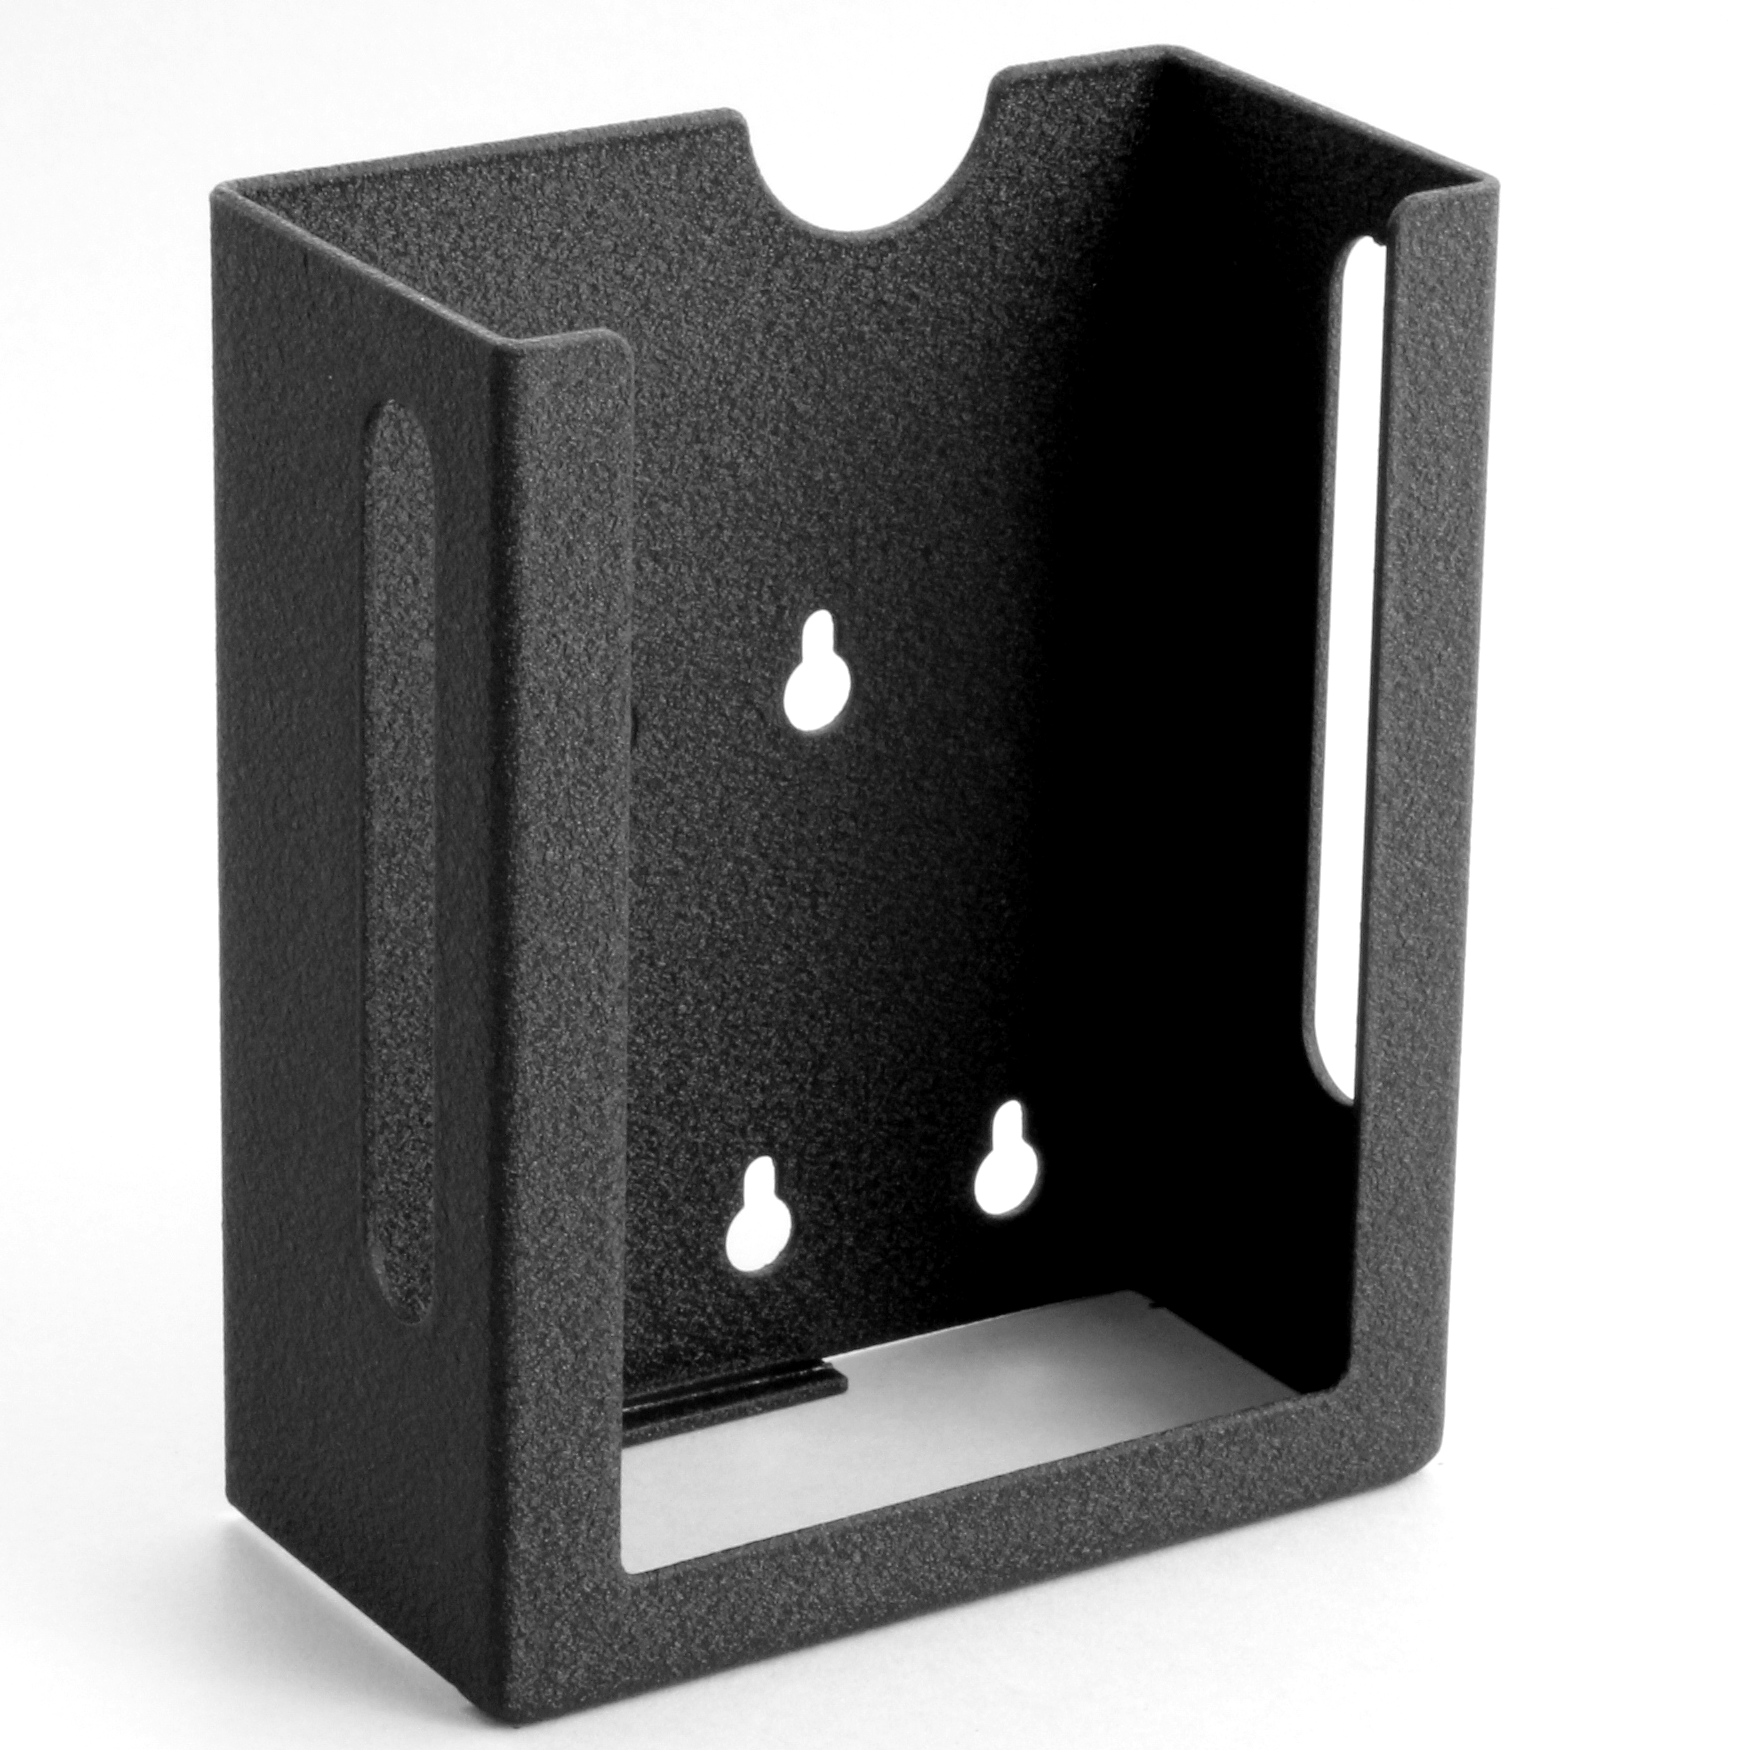 BEC-FS4-EXT Hard Drive Holder